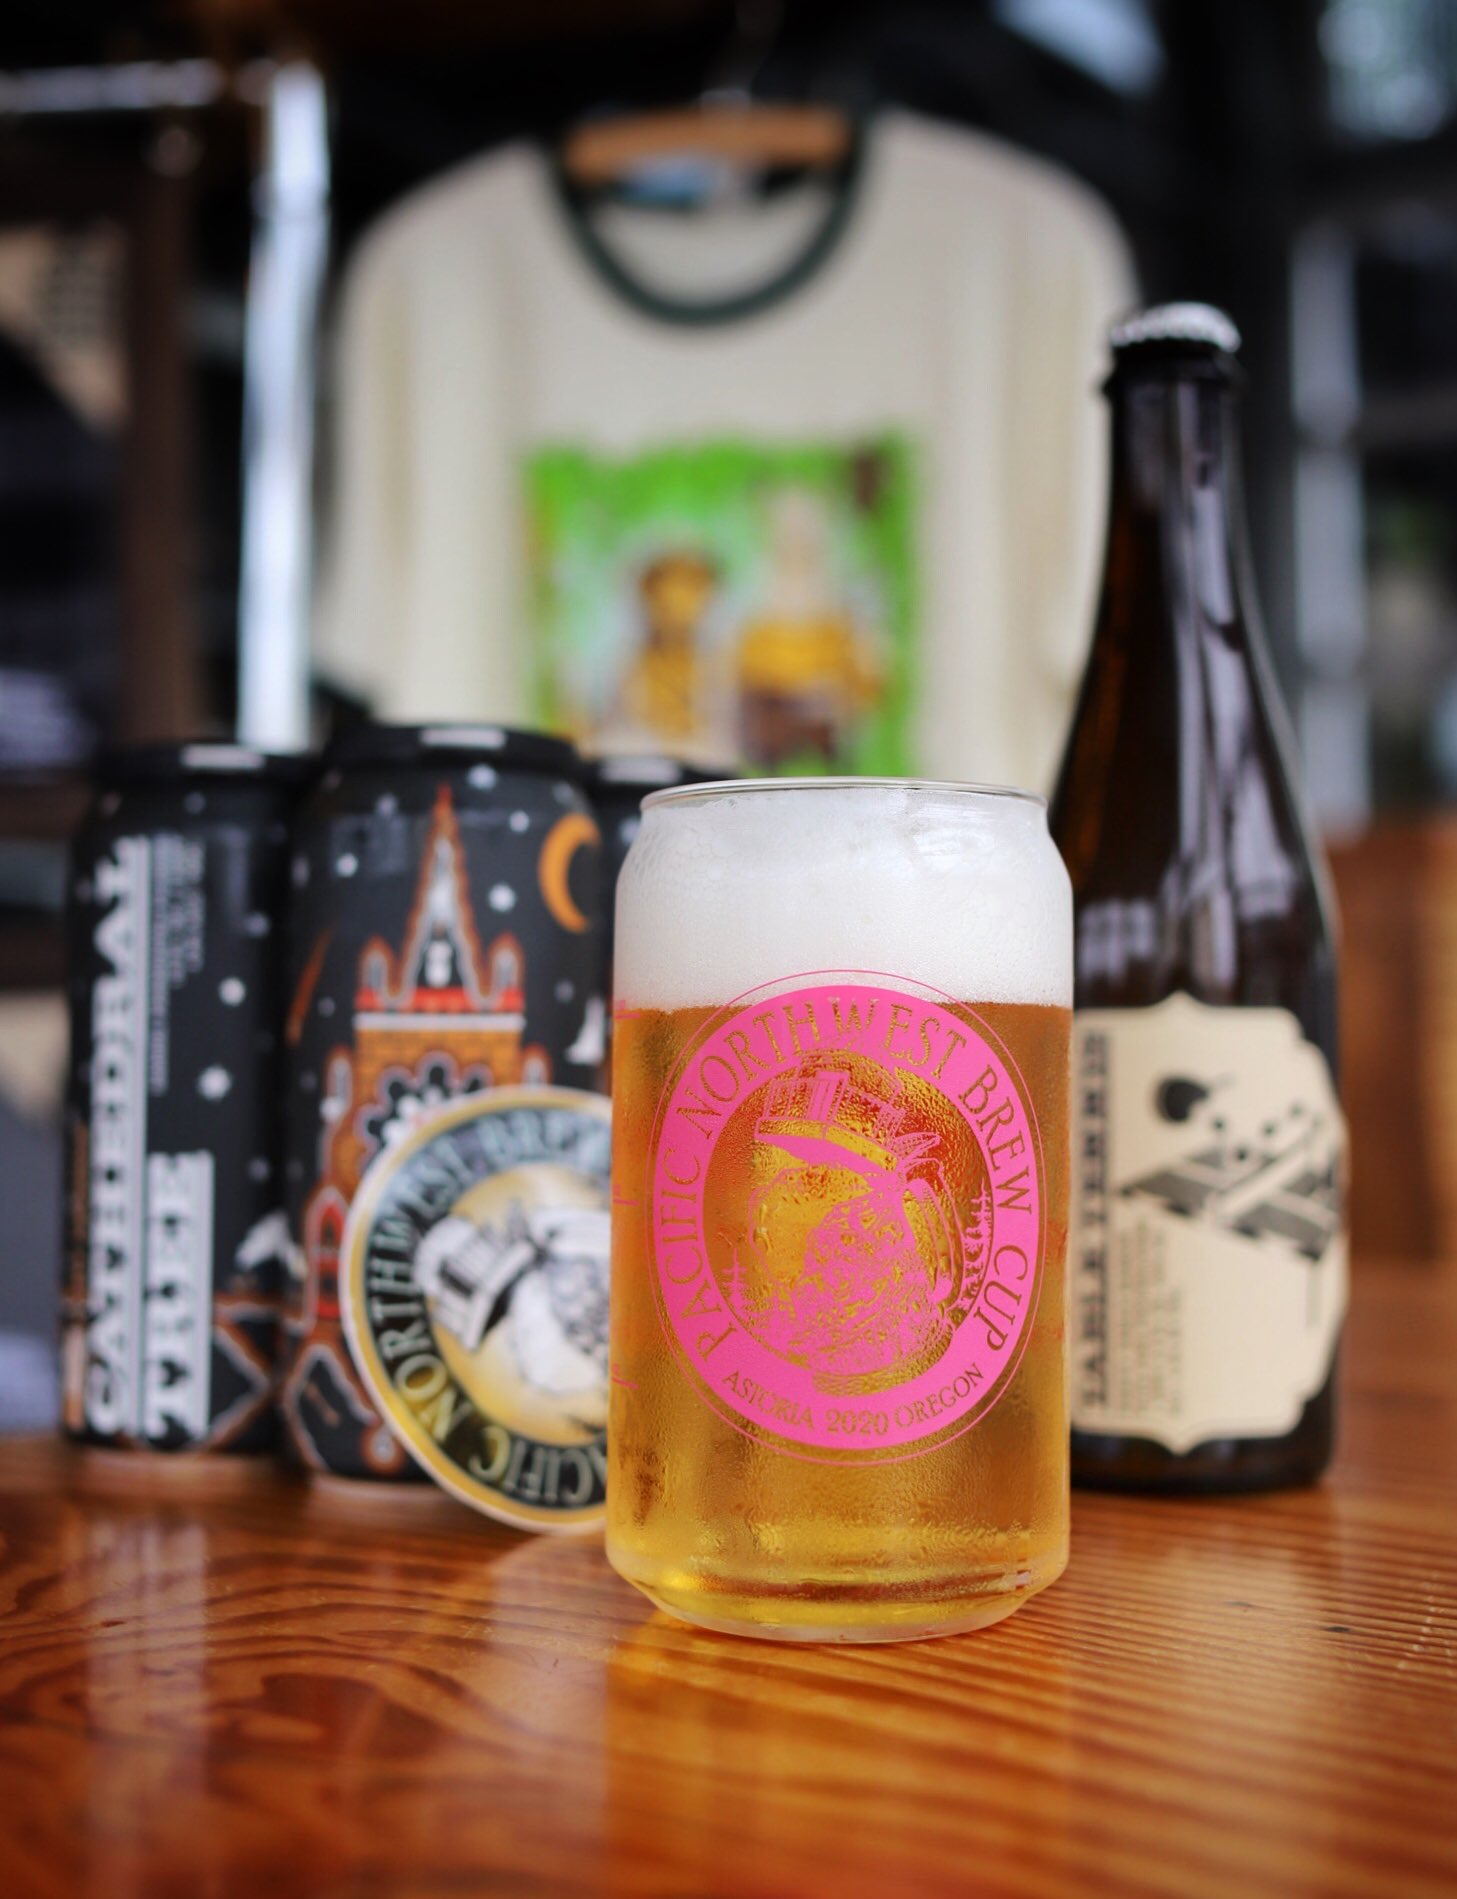 image of the Pacific Northwest Brew Cup courtesy of Fort George Brewery